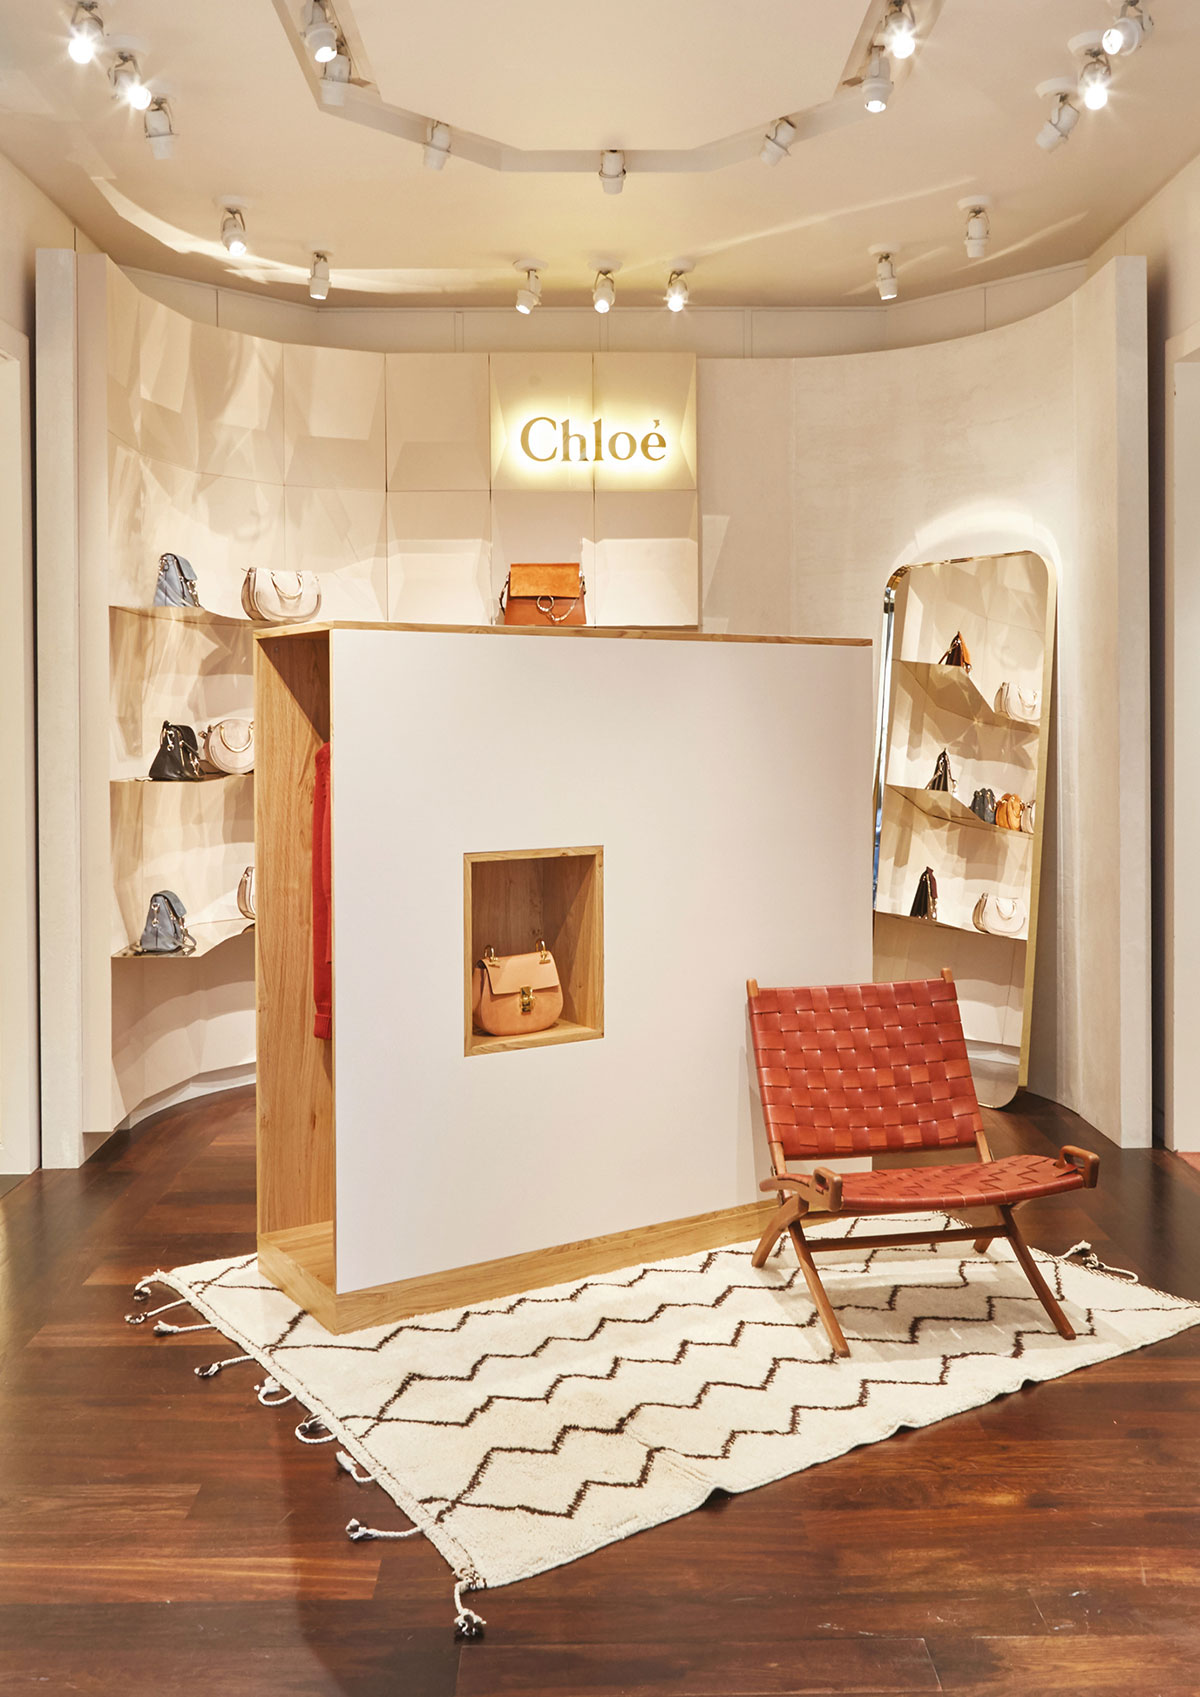 Chloe-pop-up-Barcelone-Atelier-Lame